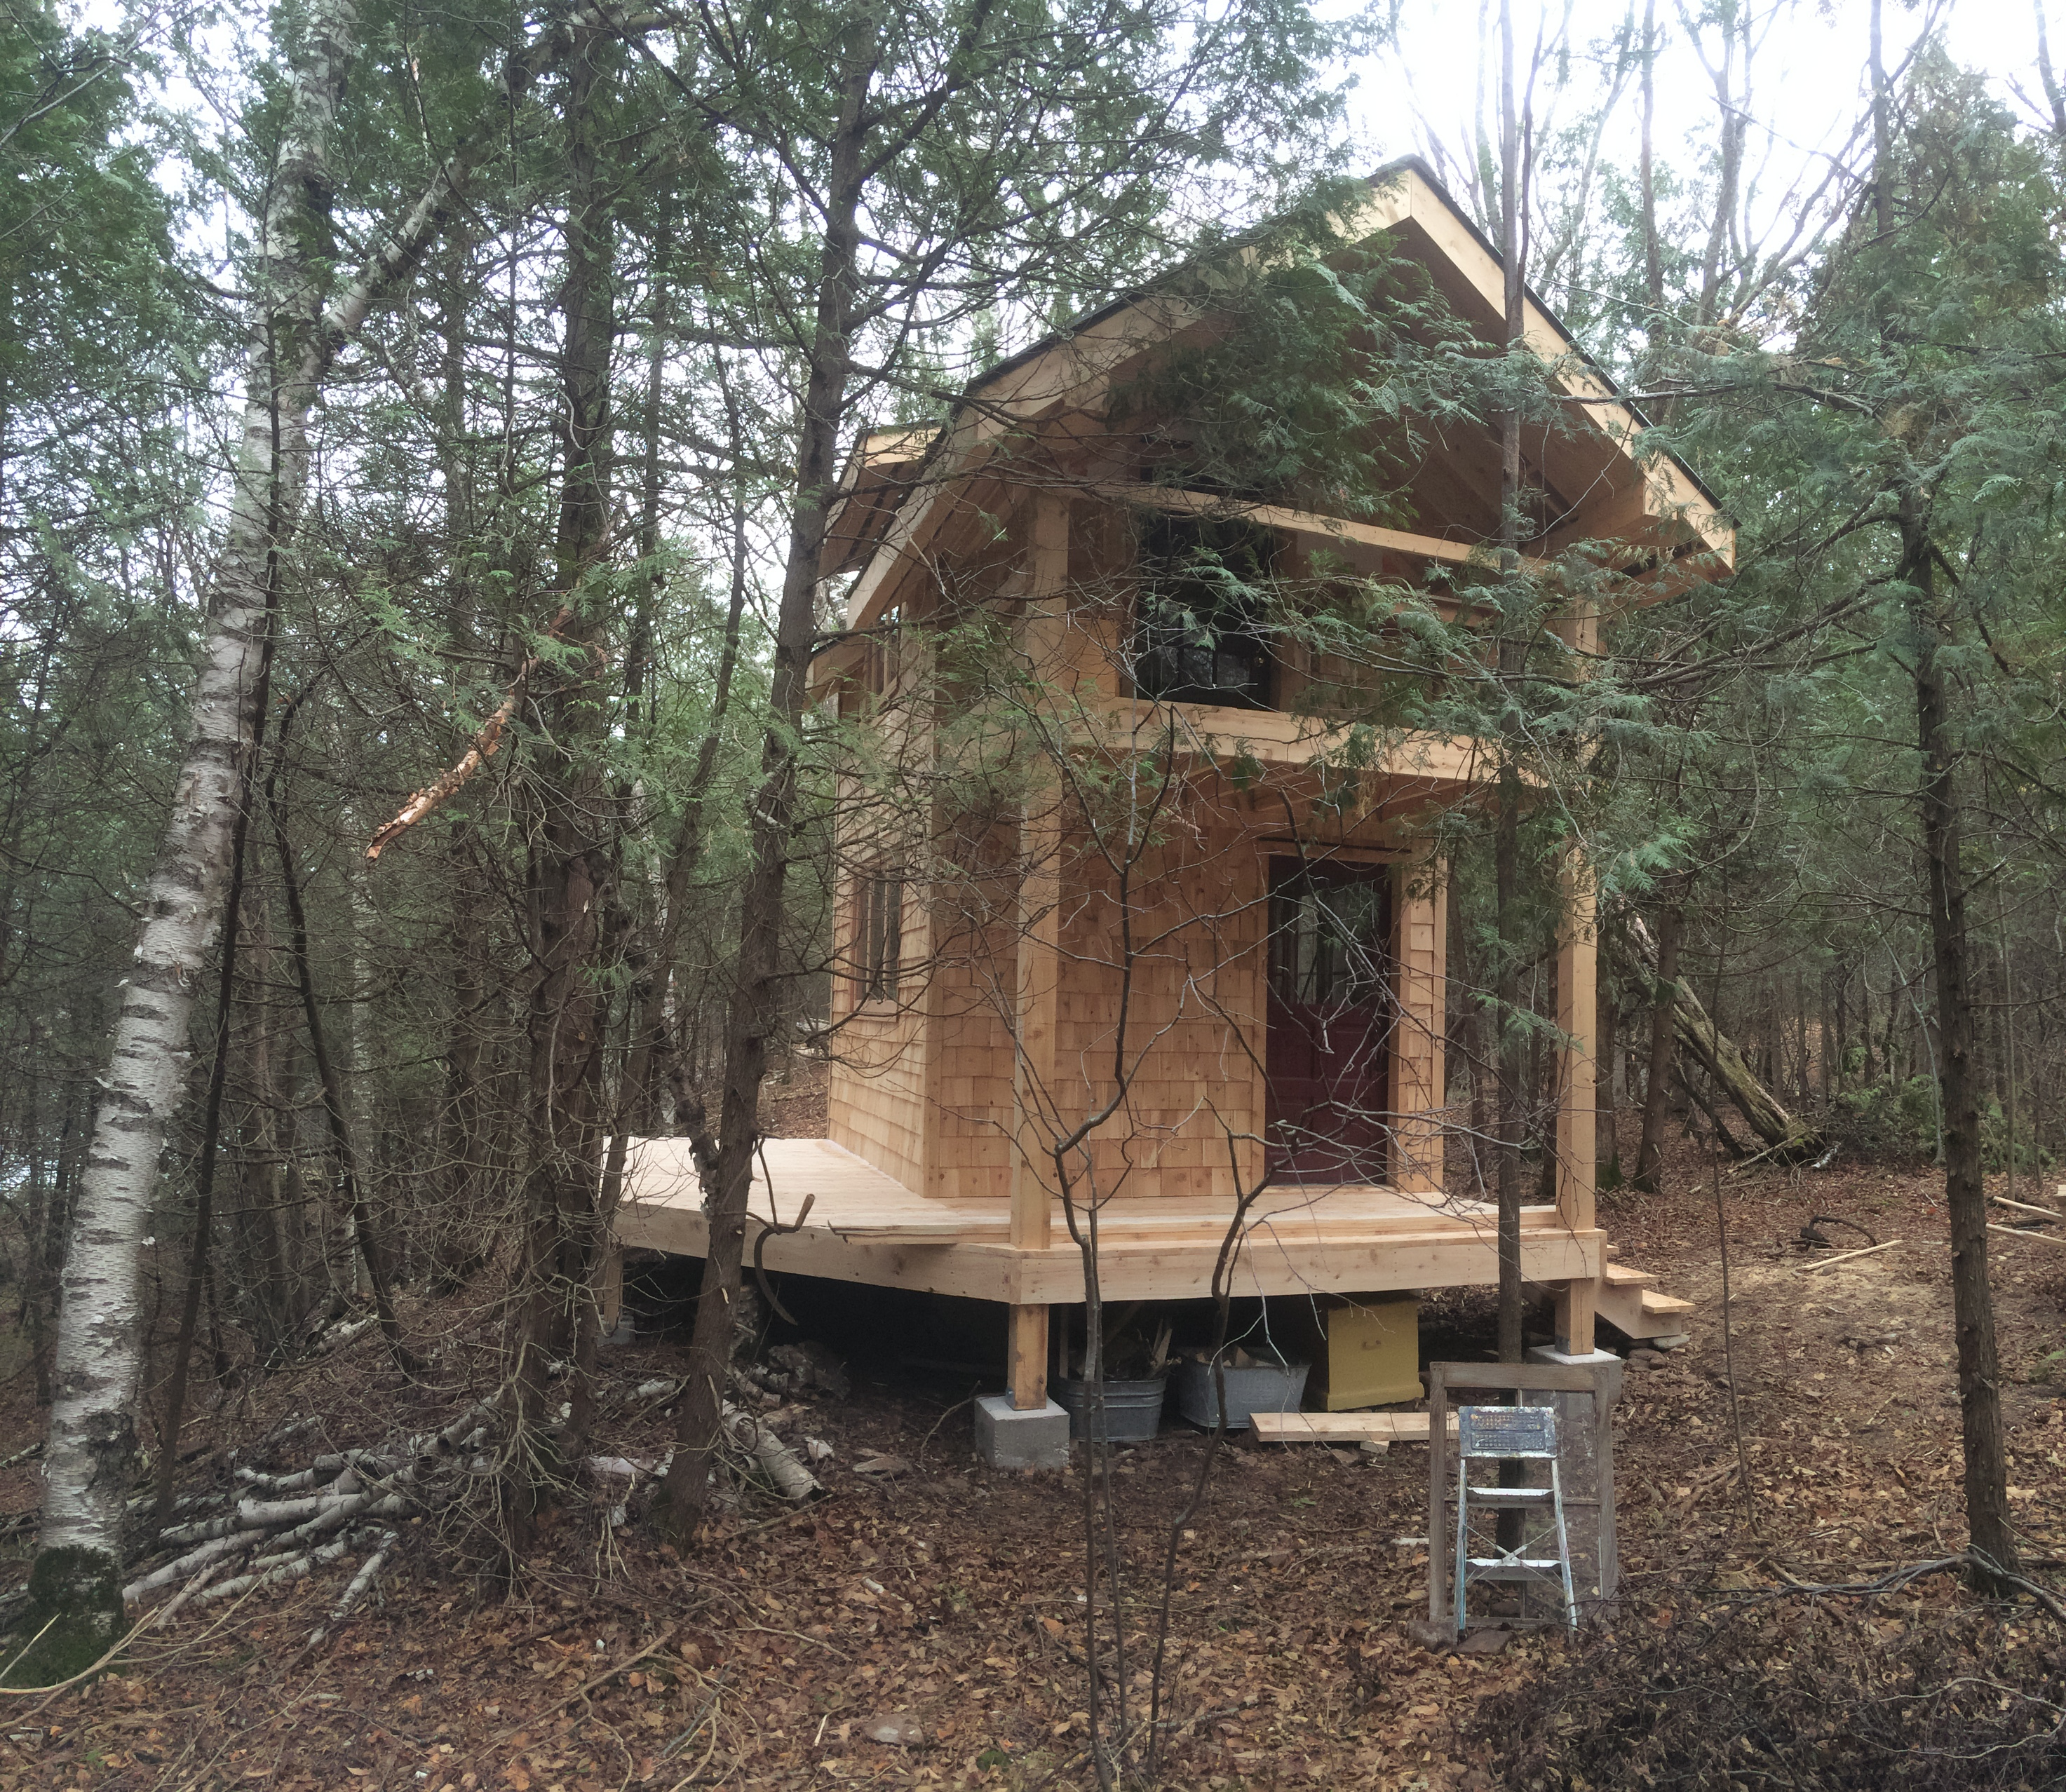 Front of 2 story tiny home in the woods